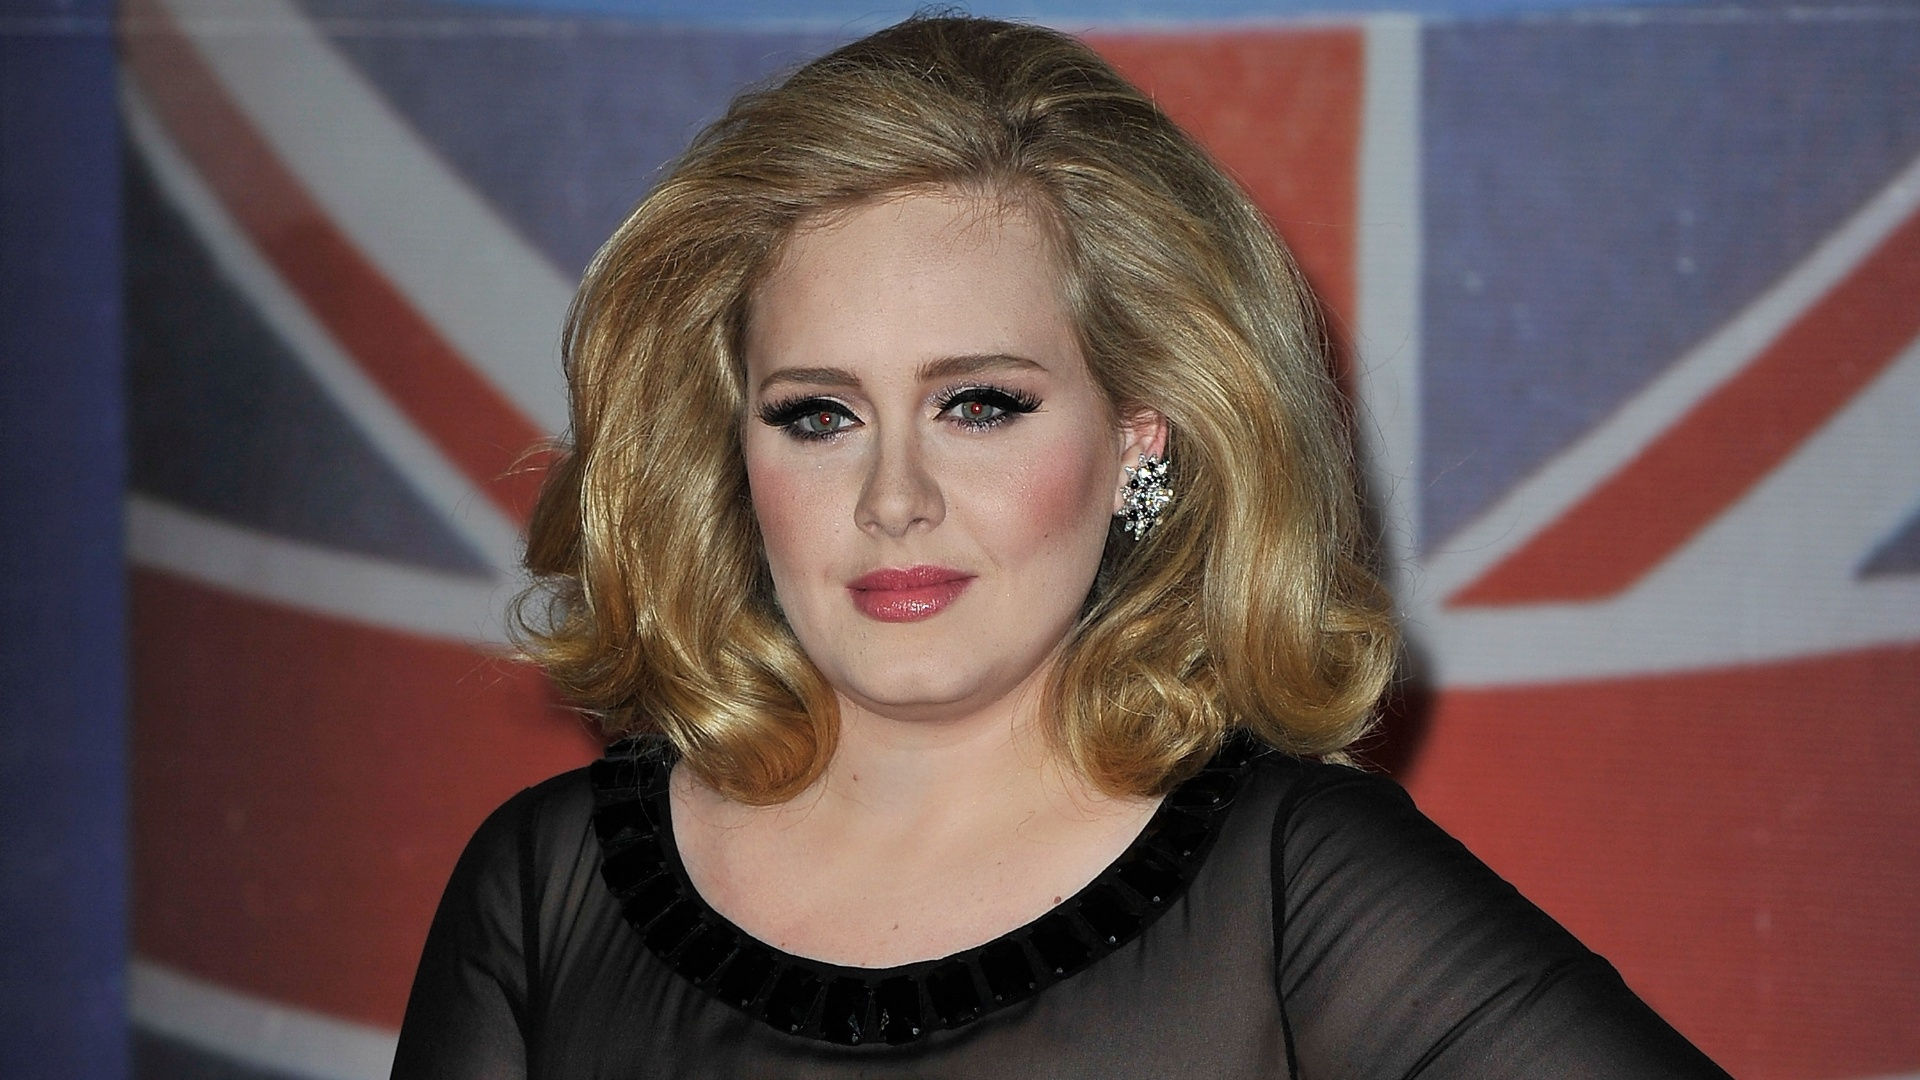 Adele no Brit Awards no 02 Arena, em Londres (21/2/12)